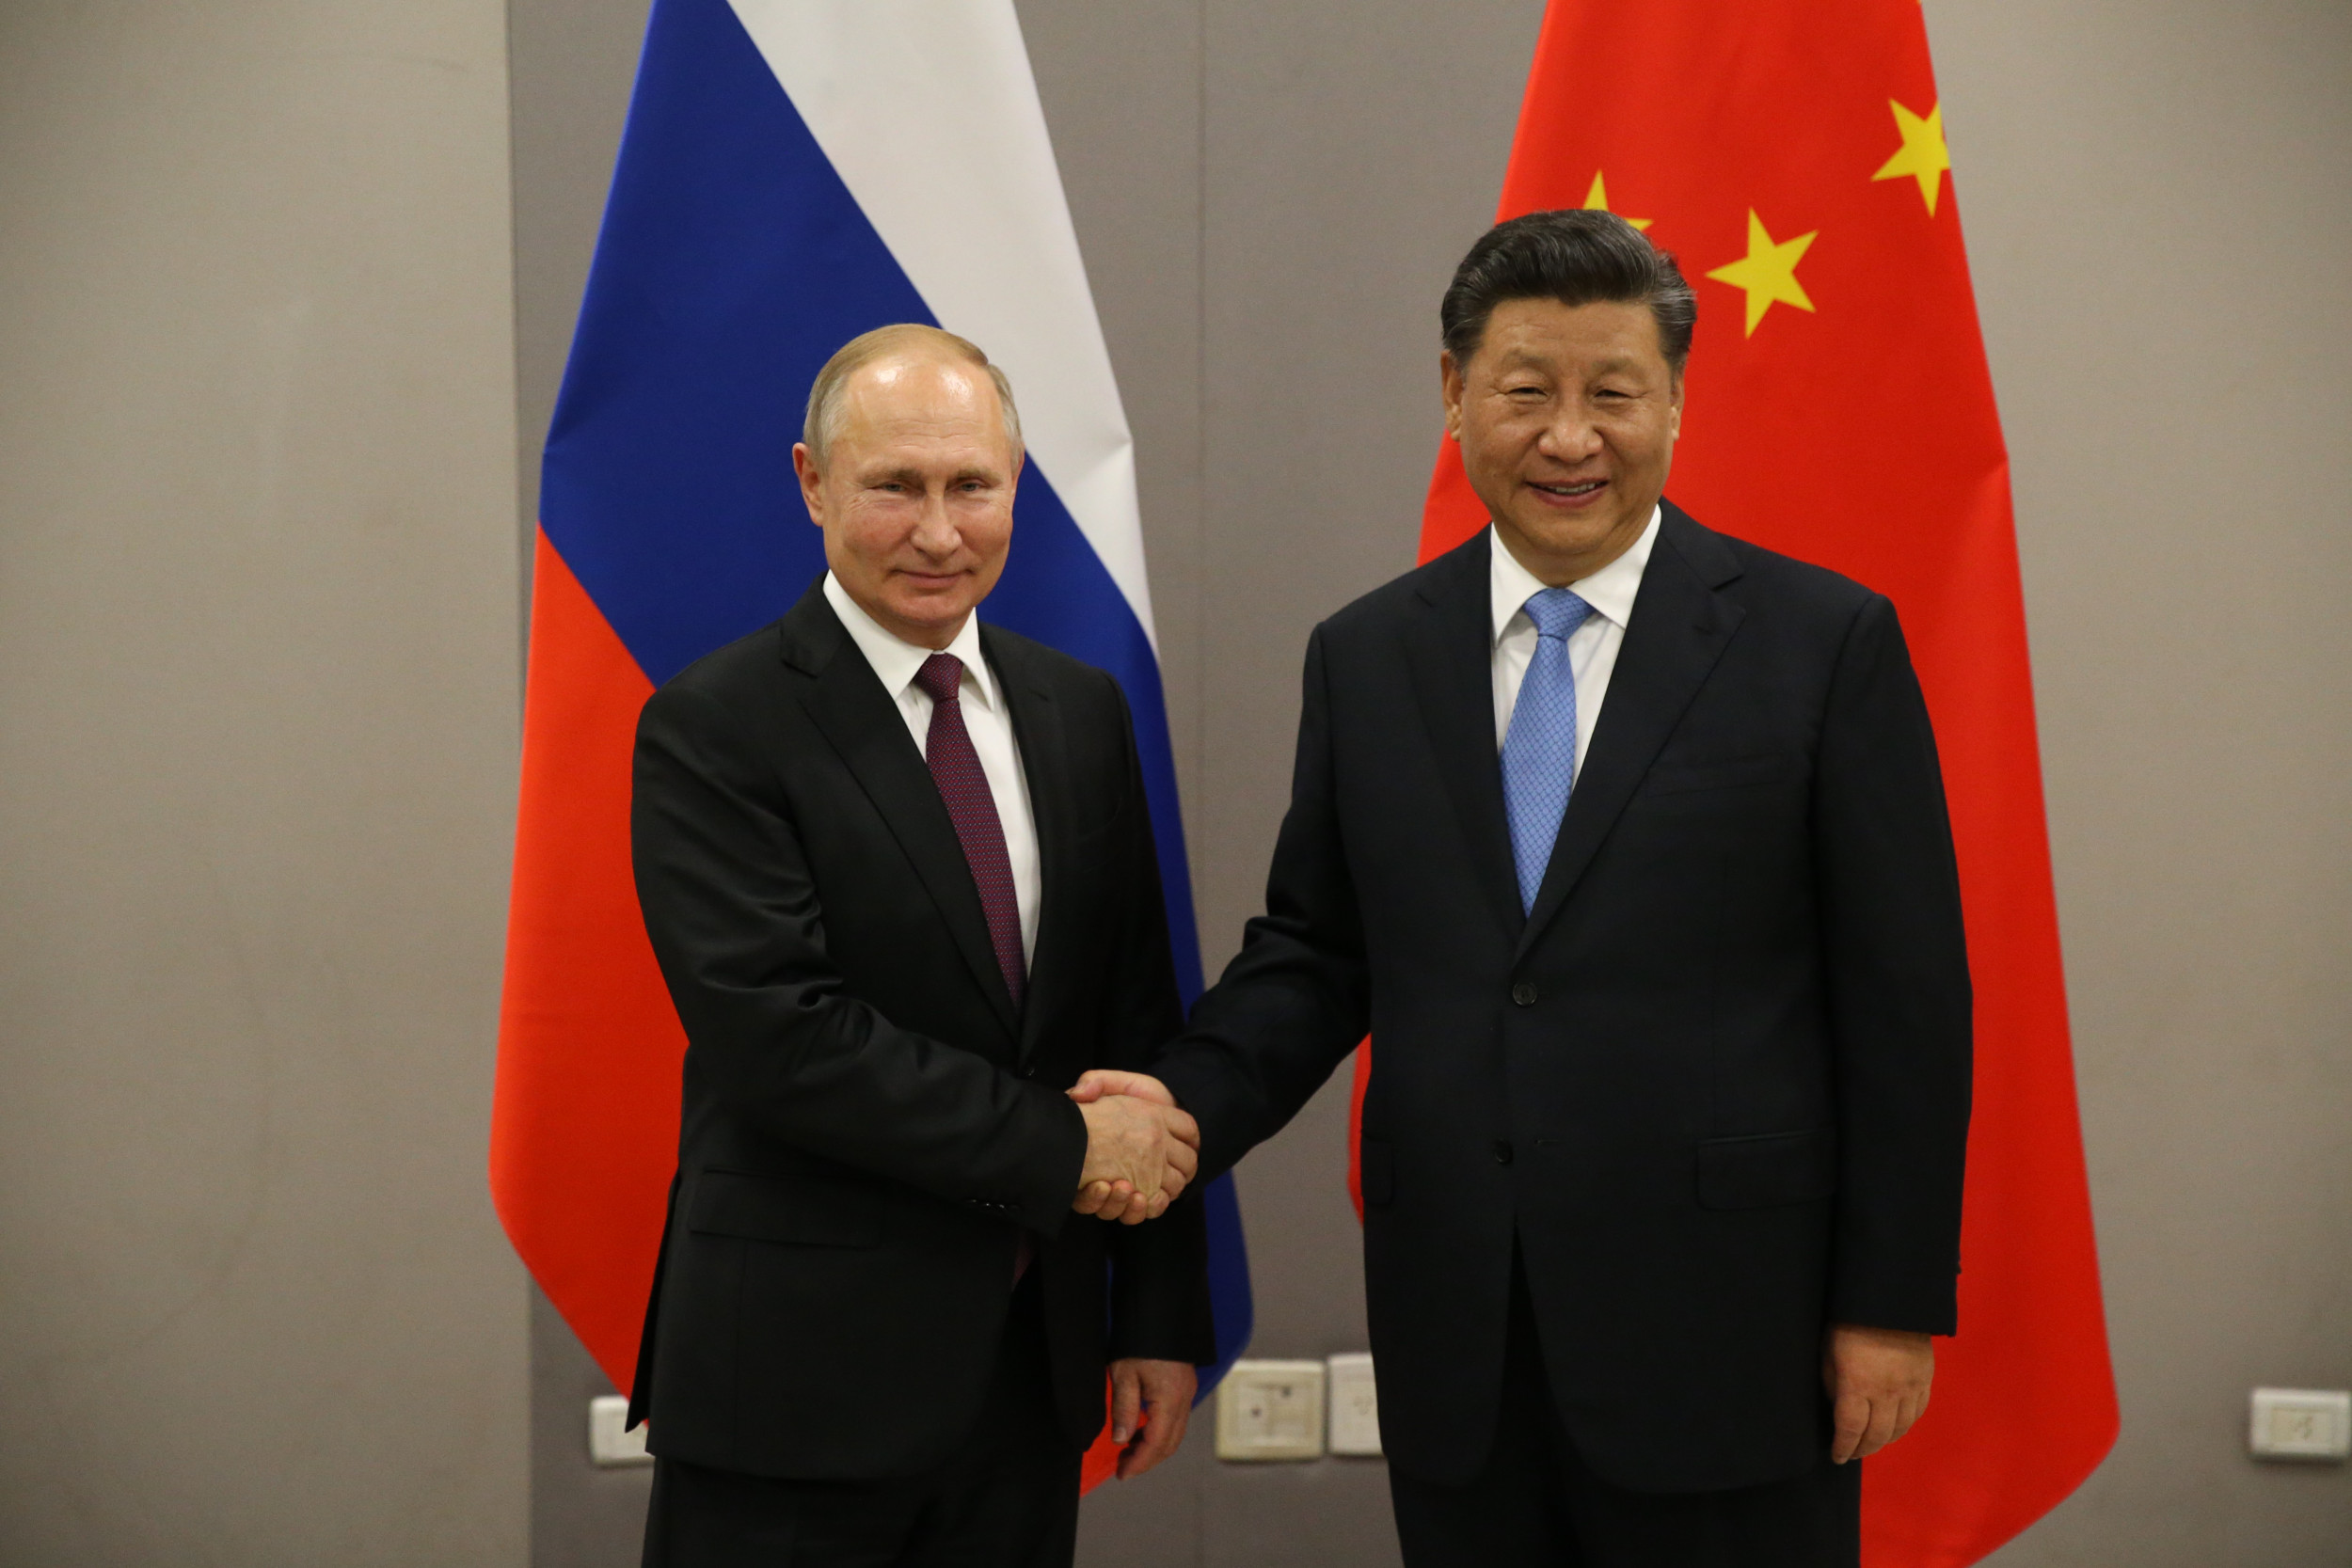 Russia, China Forge Uneasy Anti-U.S. Relationship Amid COVID-19